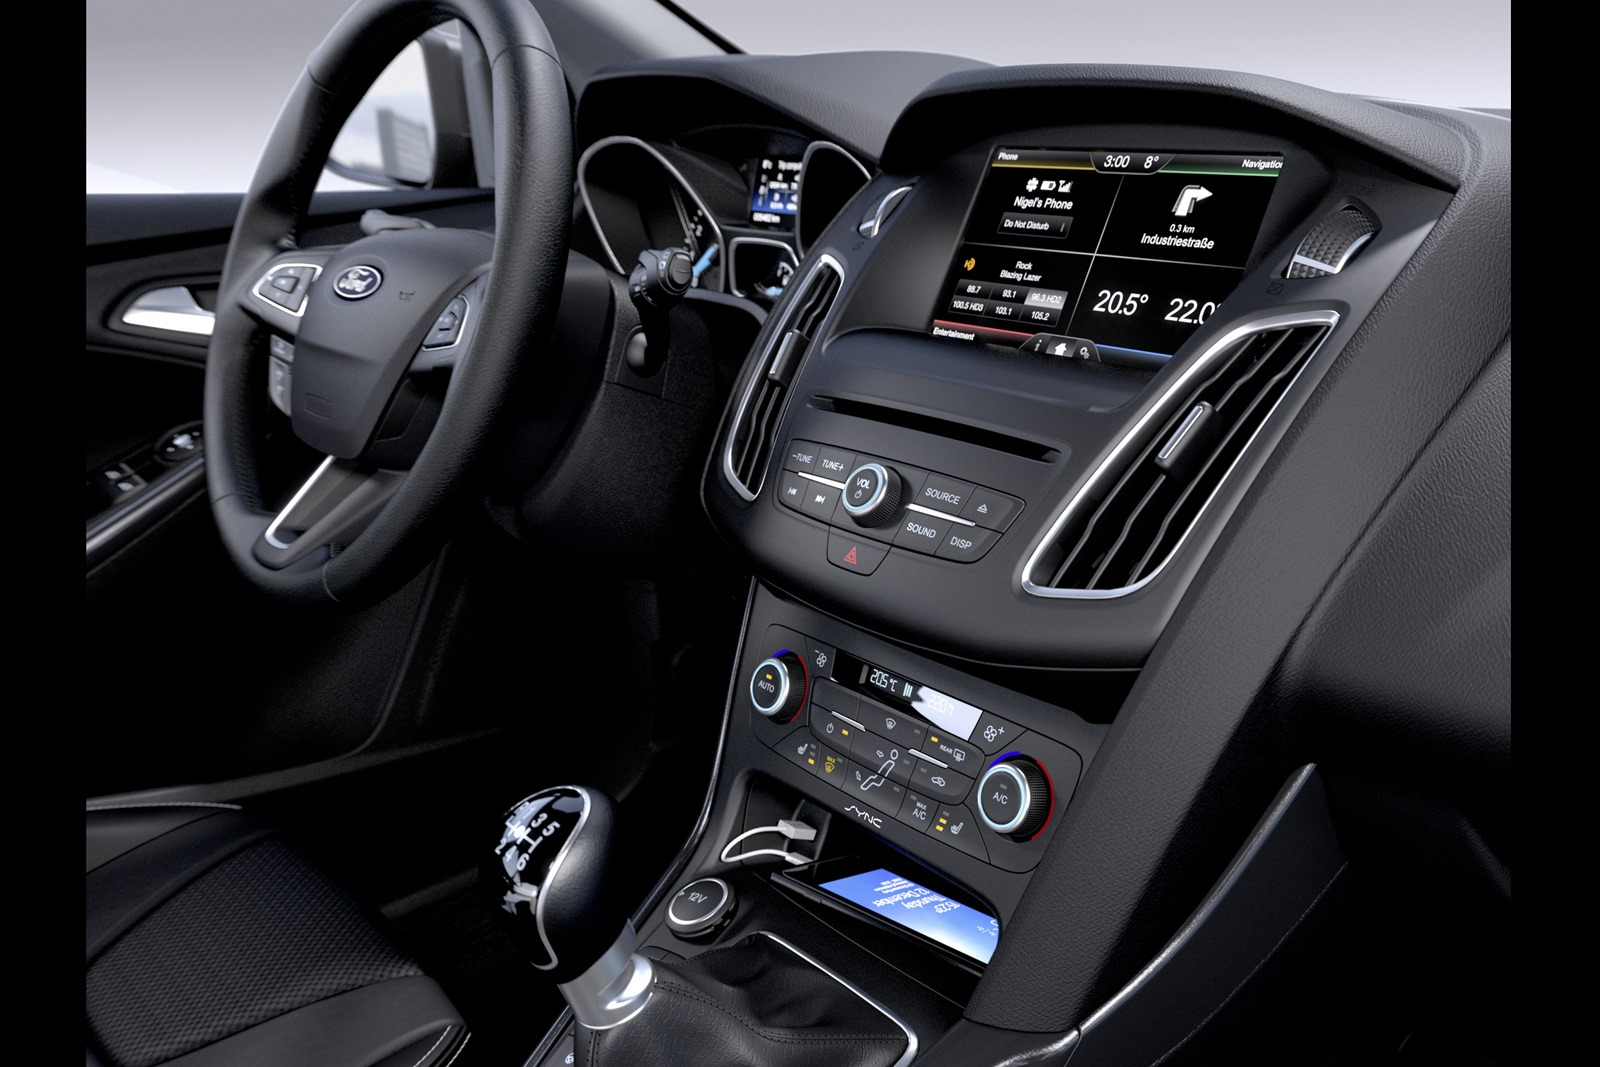 astounding-design-of-the-black-dash-ideas-with-black-steering-wheels-with-silver-accents-as-the-ford-focus-facelift-2015-interior